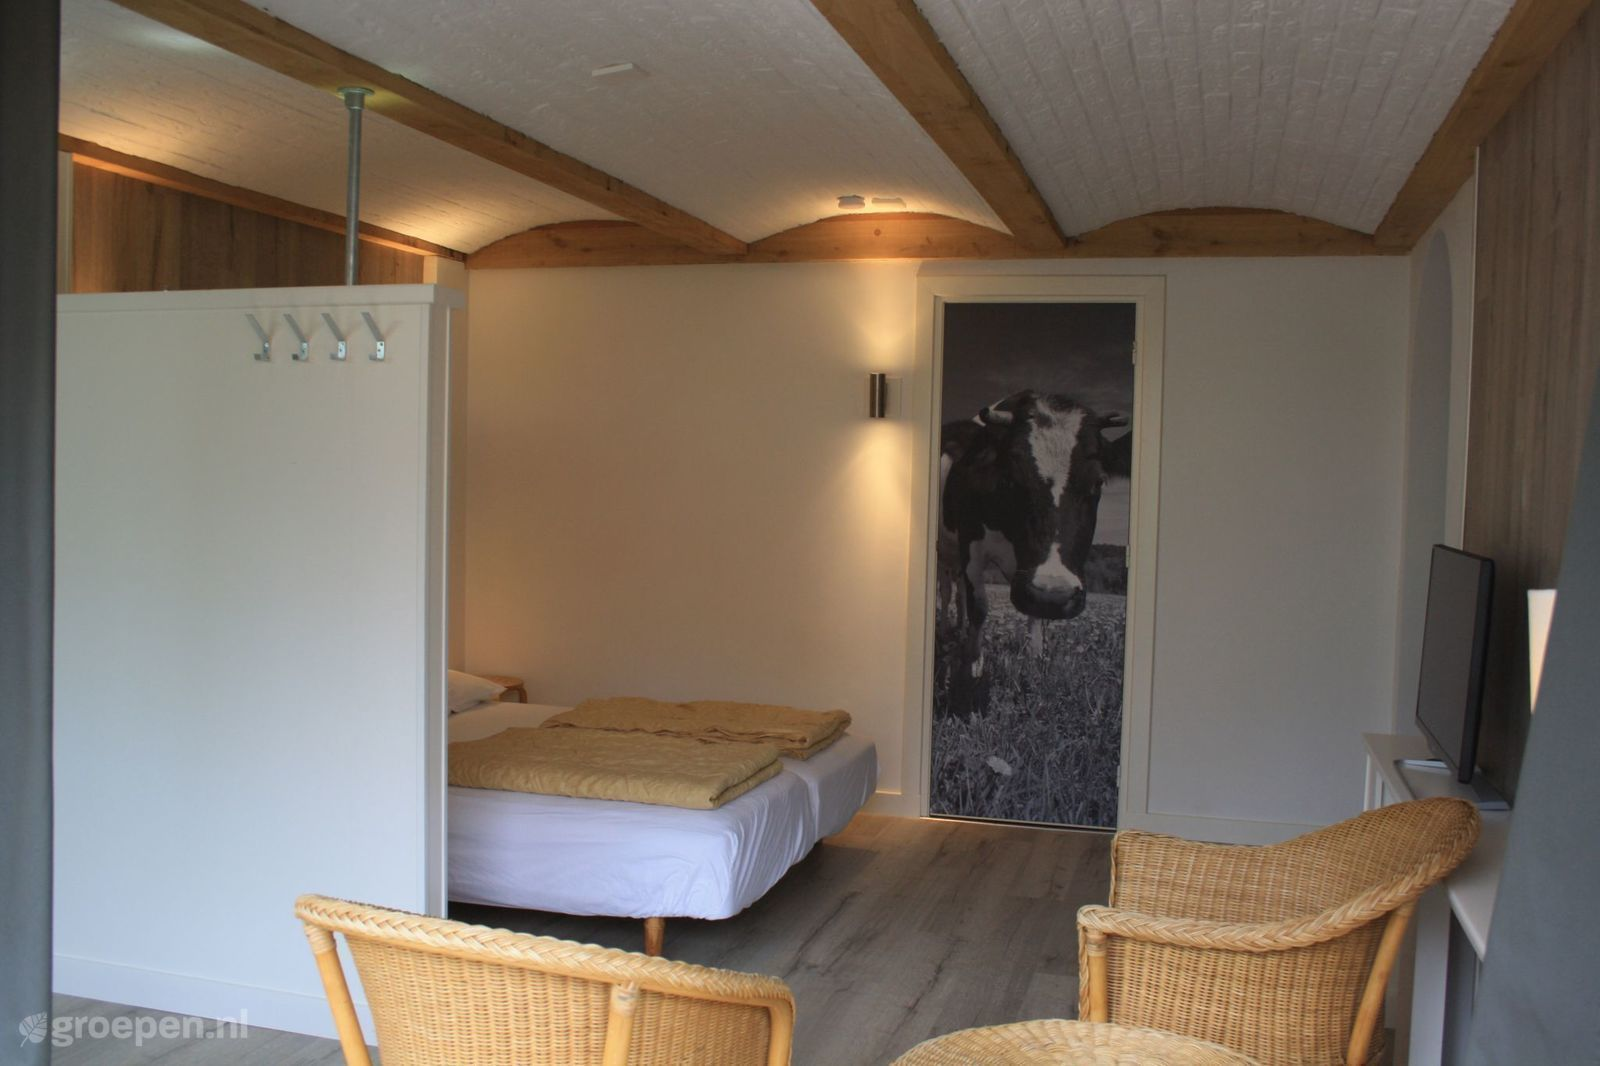 Group accommodation Maasbree